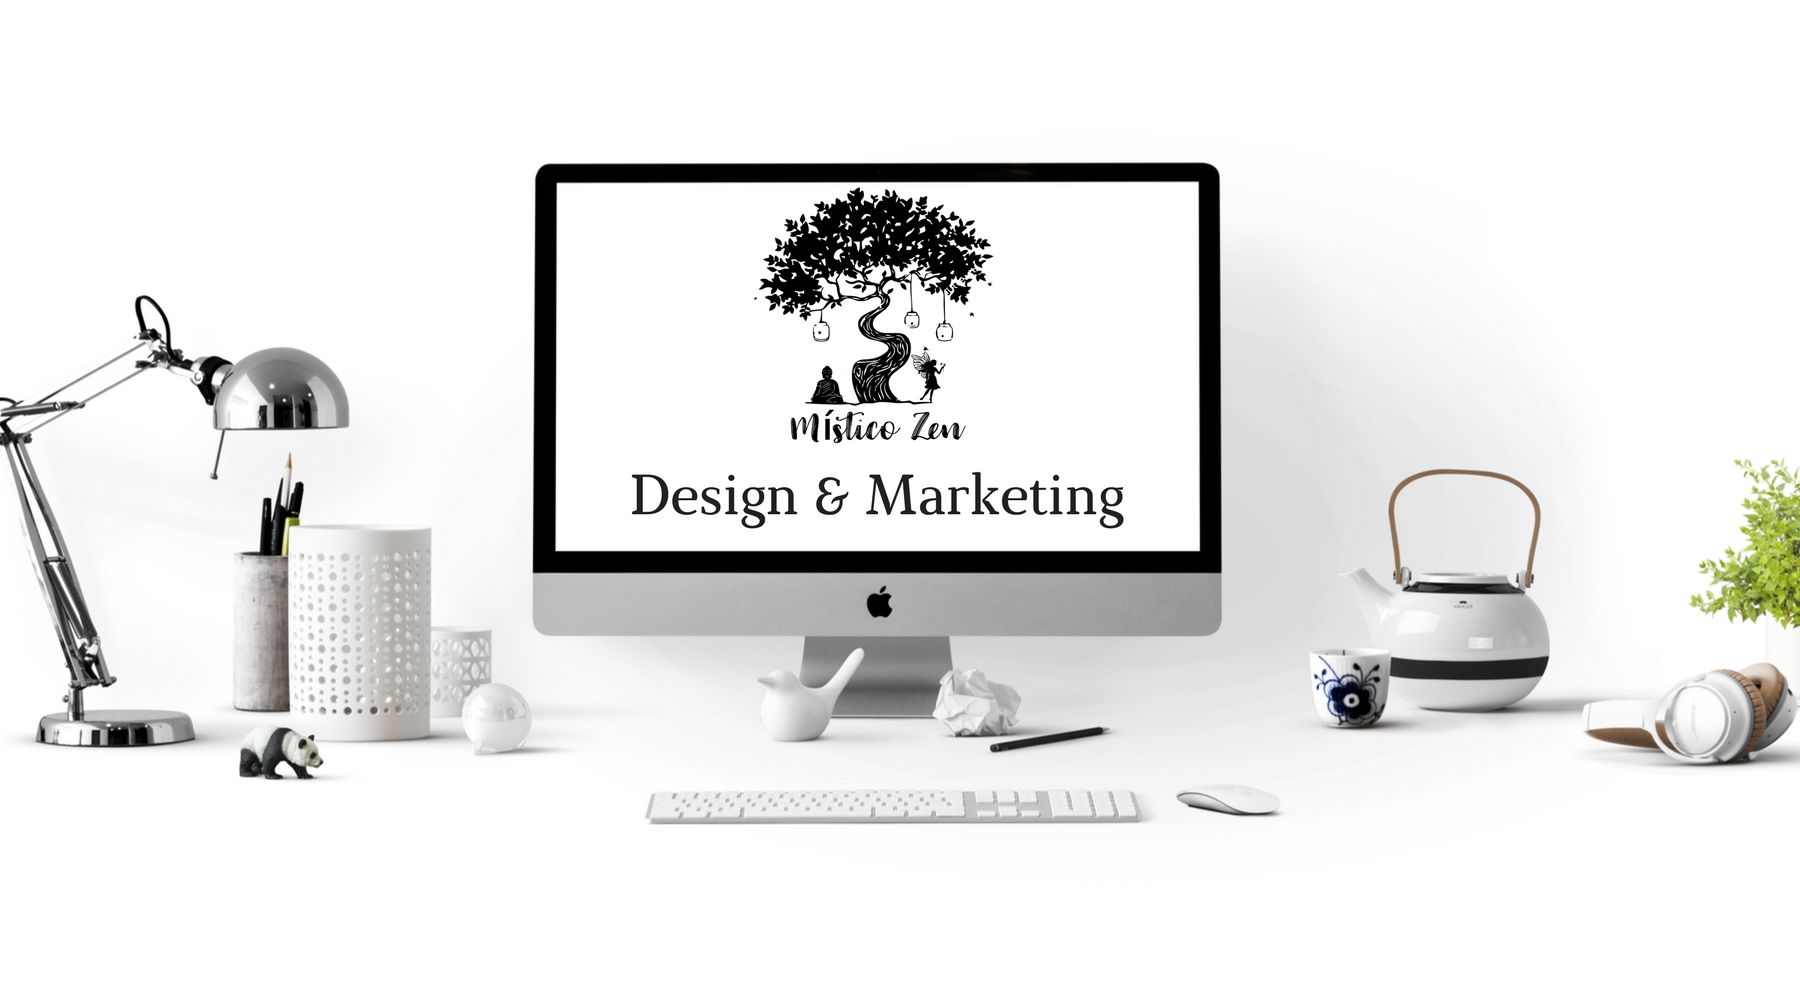 misticozen design e marketing